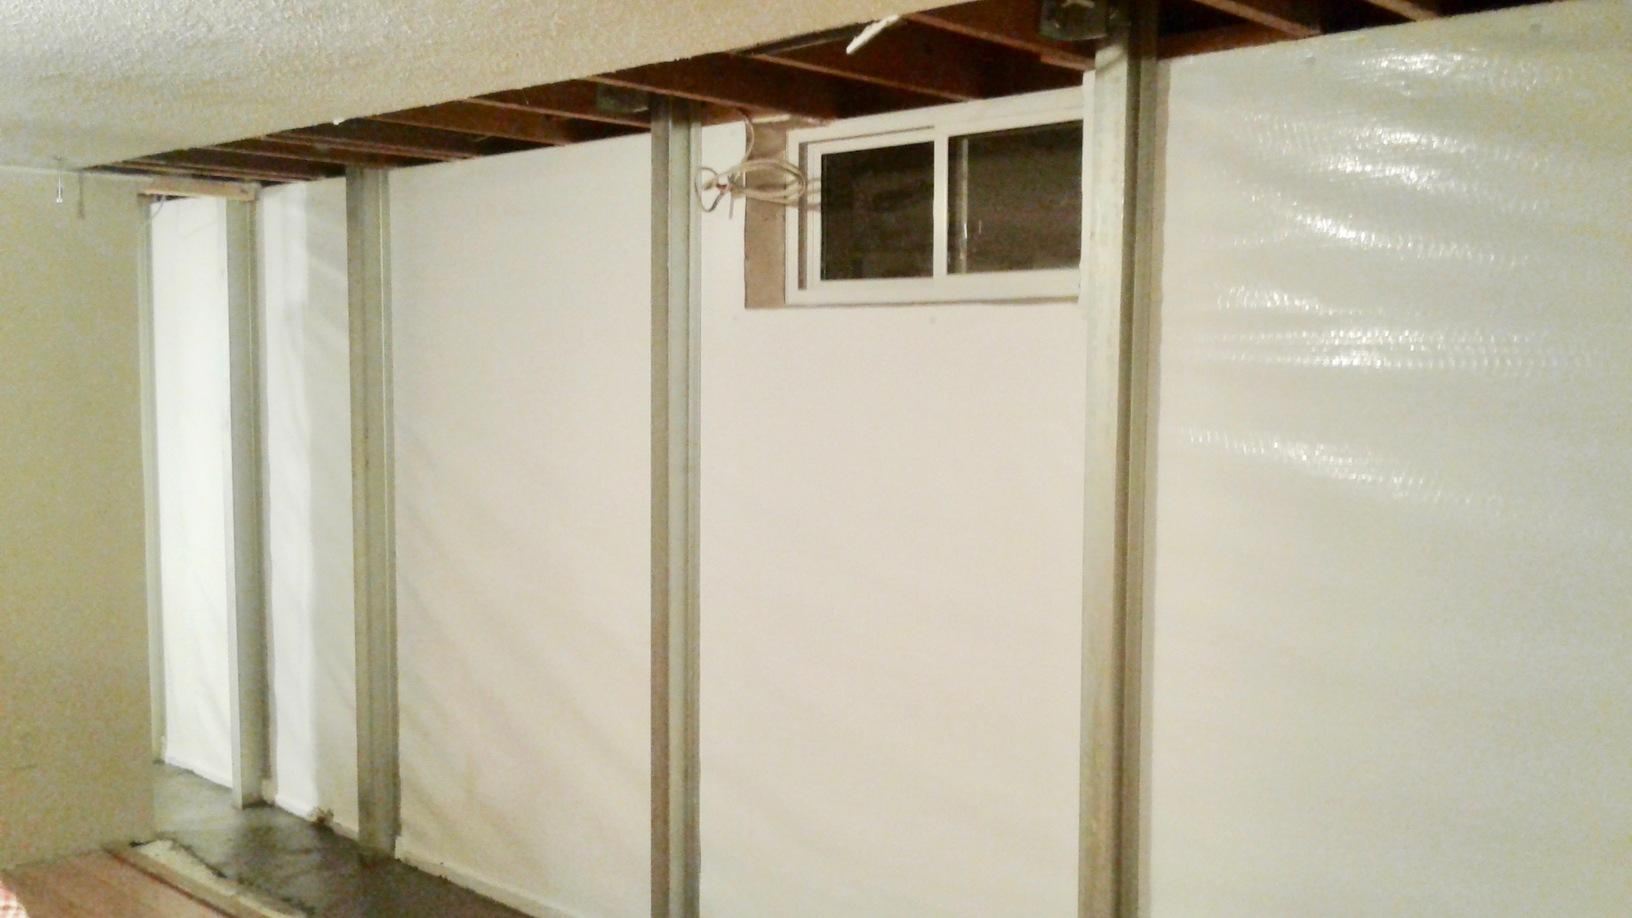 Basement Wall Crack Repair in Rochester, MN - After Photo